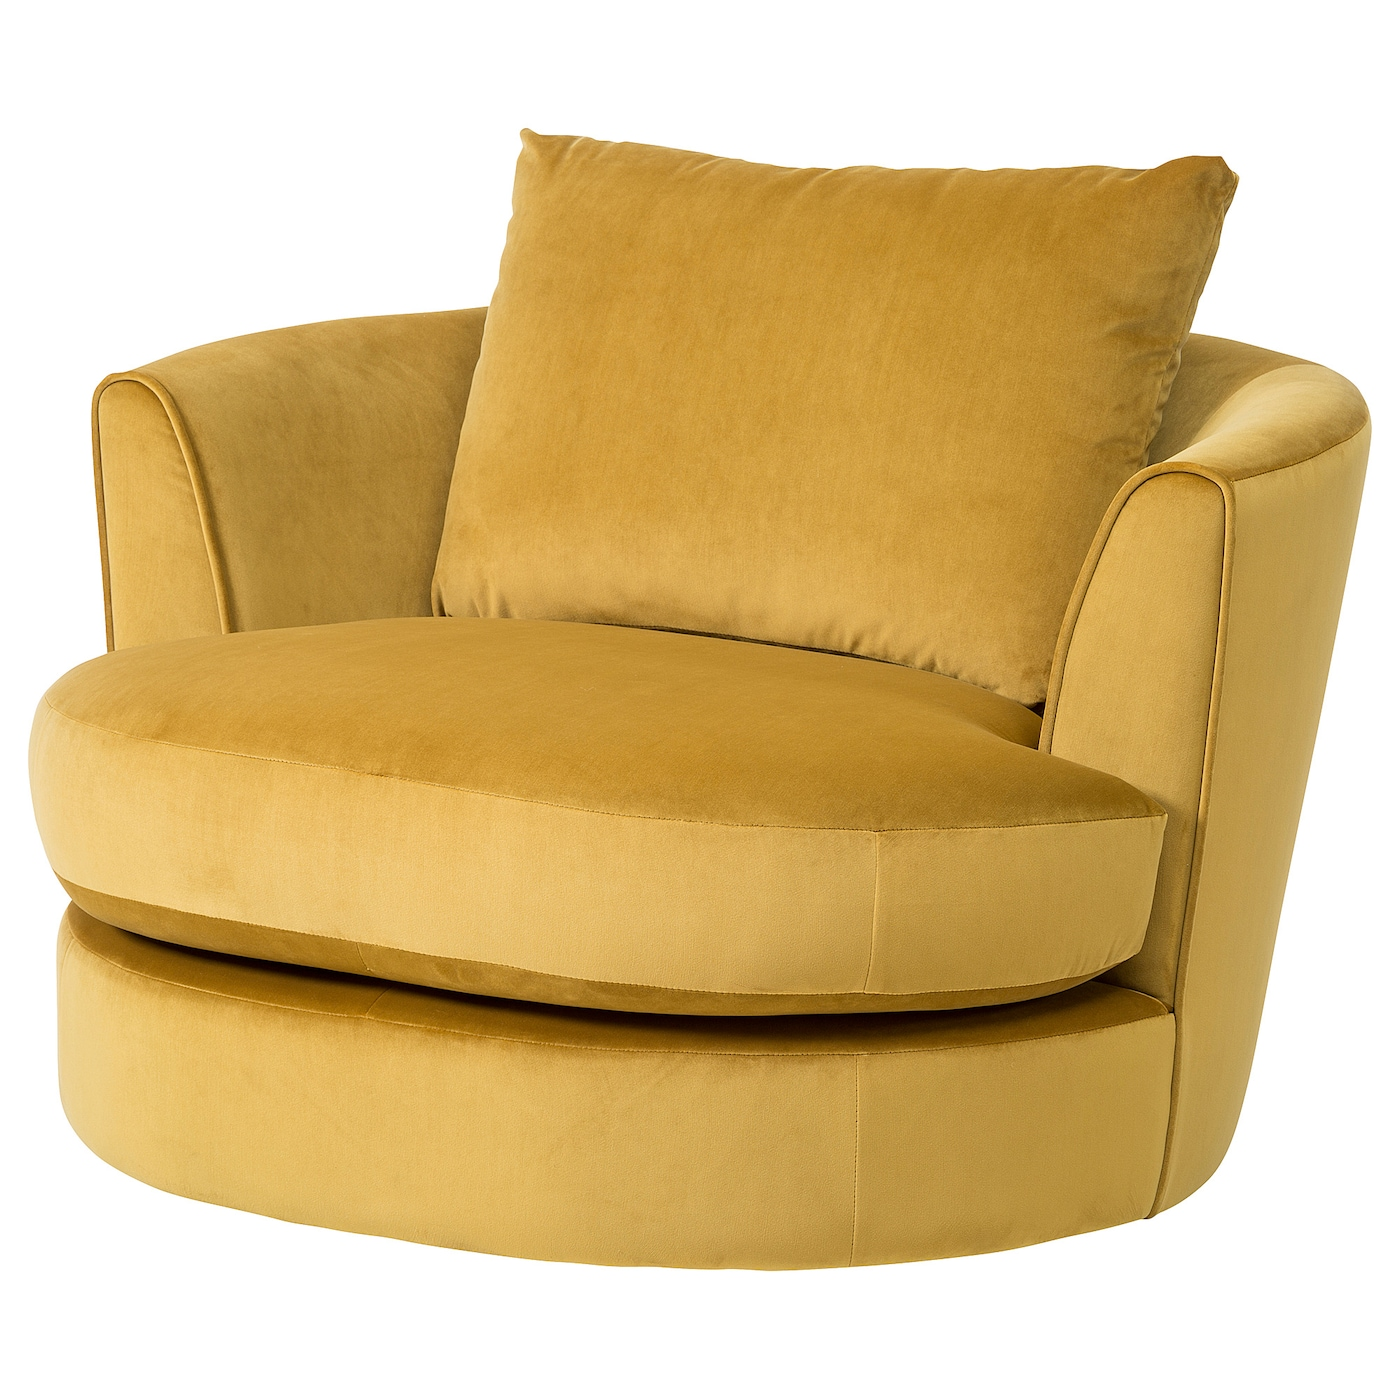 FASALT Swivel armchair, velvet yellow - IKEA Ireland